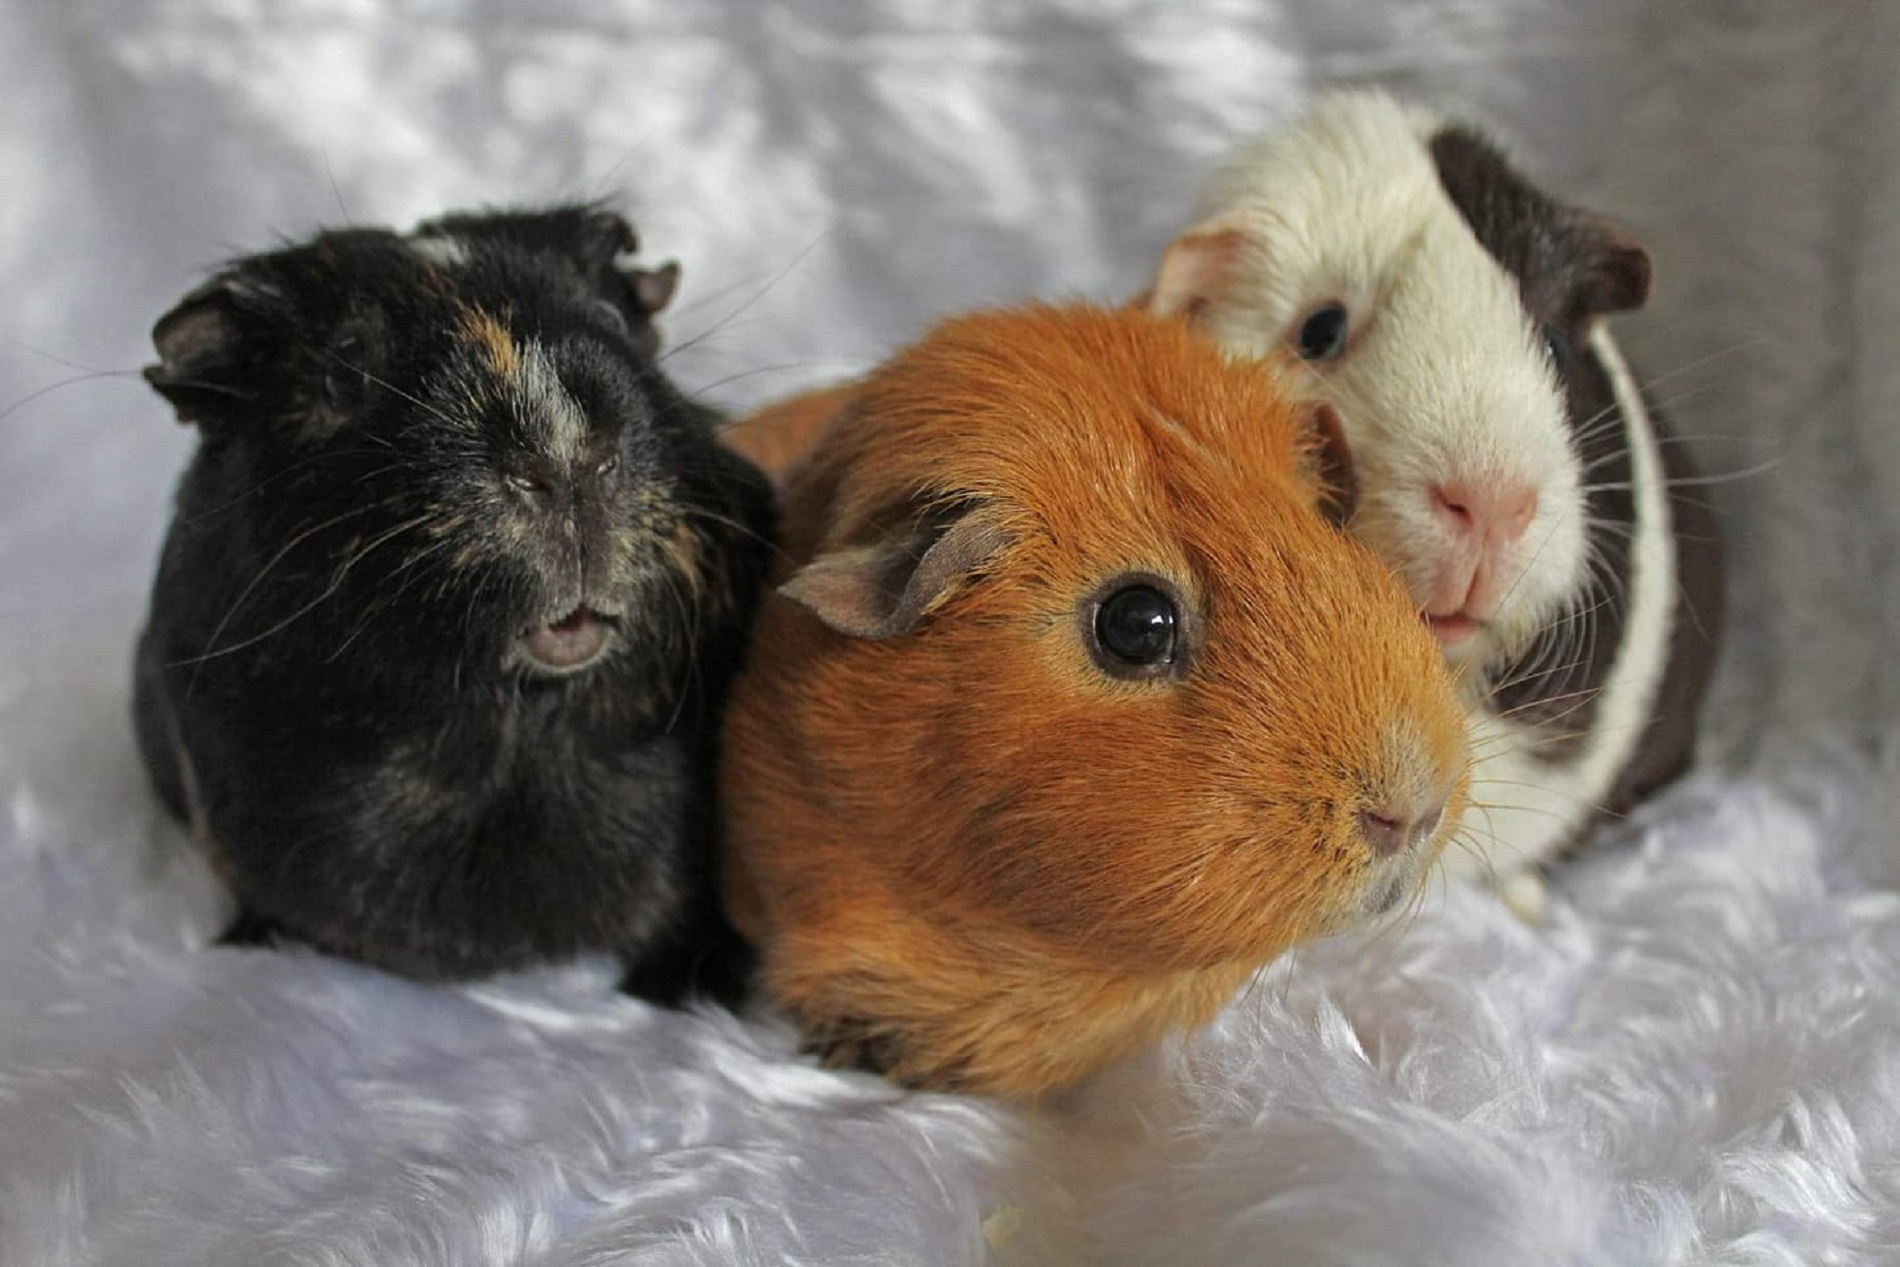 Parsley (April 2014), Ginny & Hermione (Sept 2015)